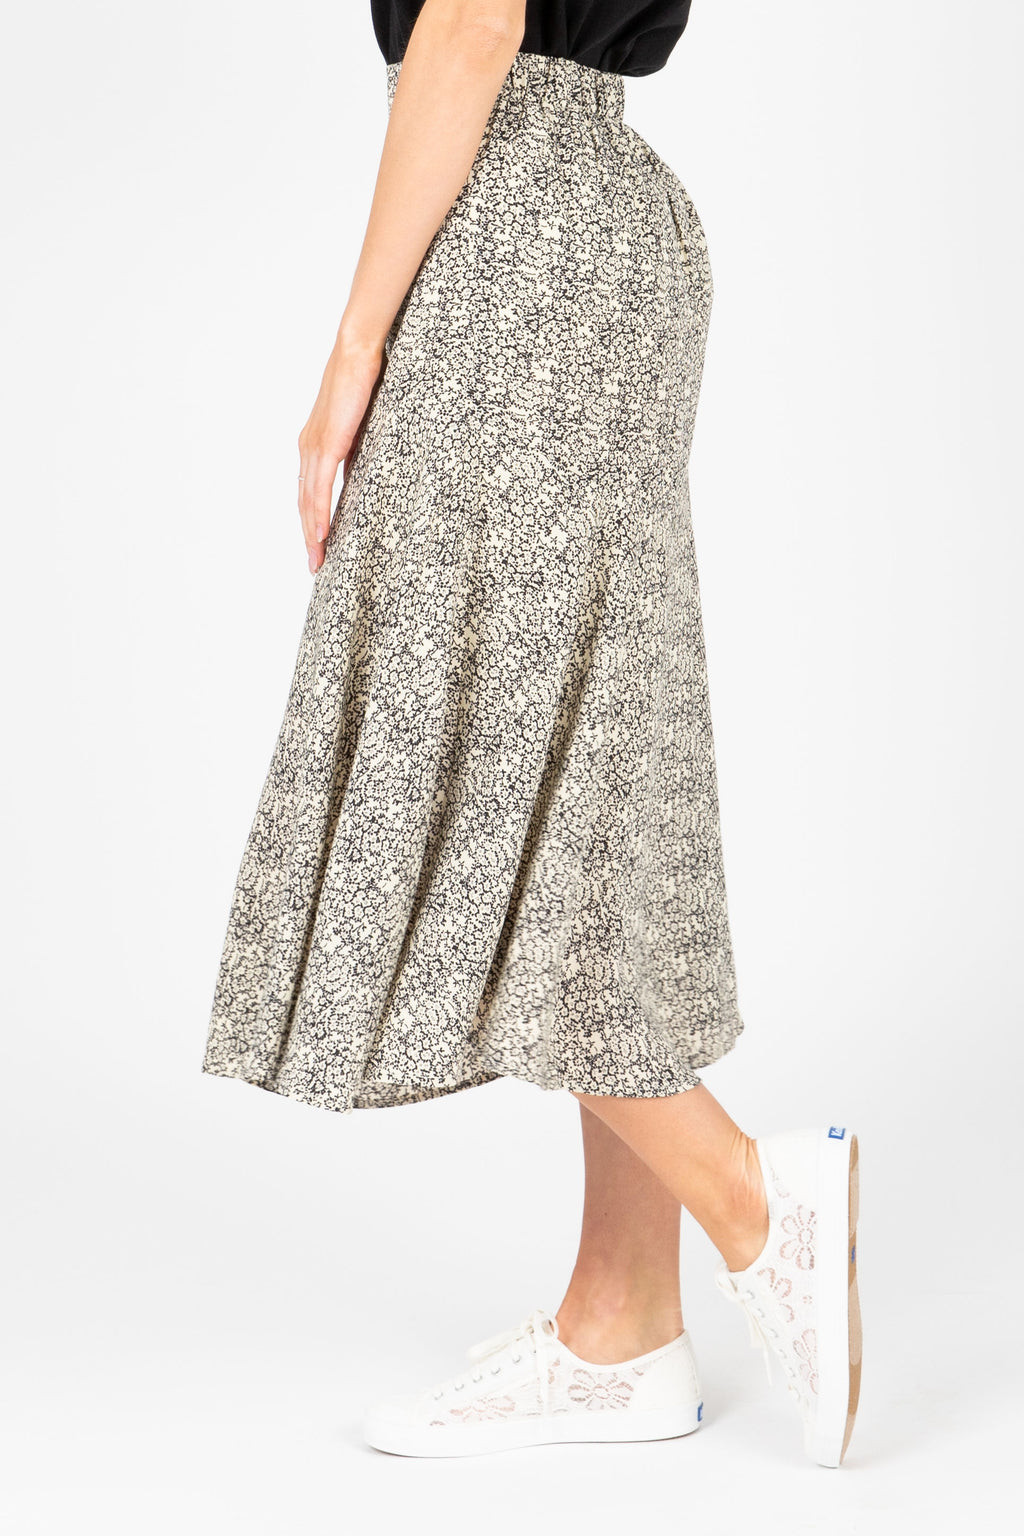 The Livia Patterned Skirt in Black